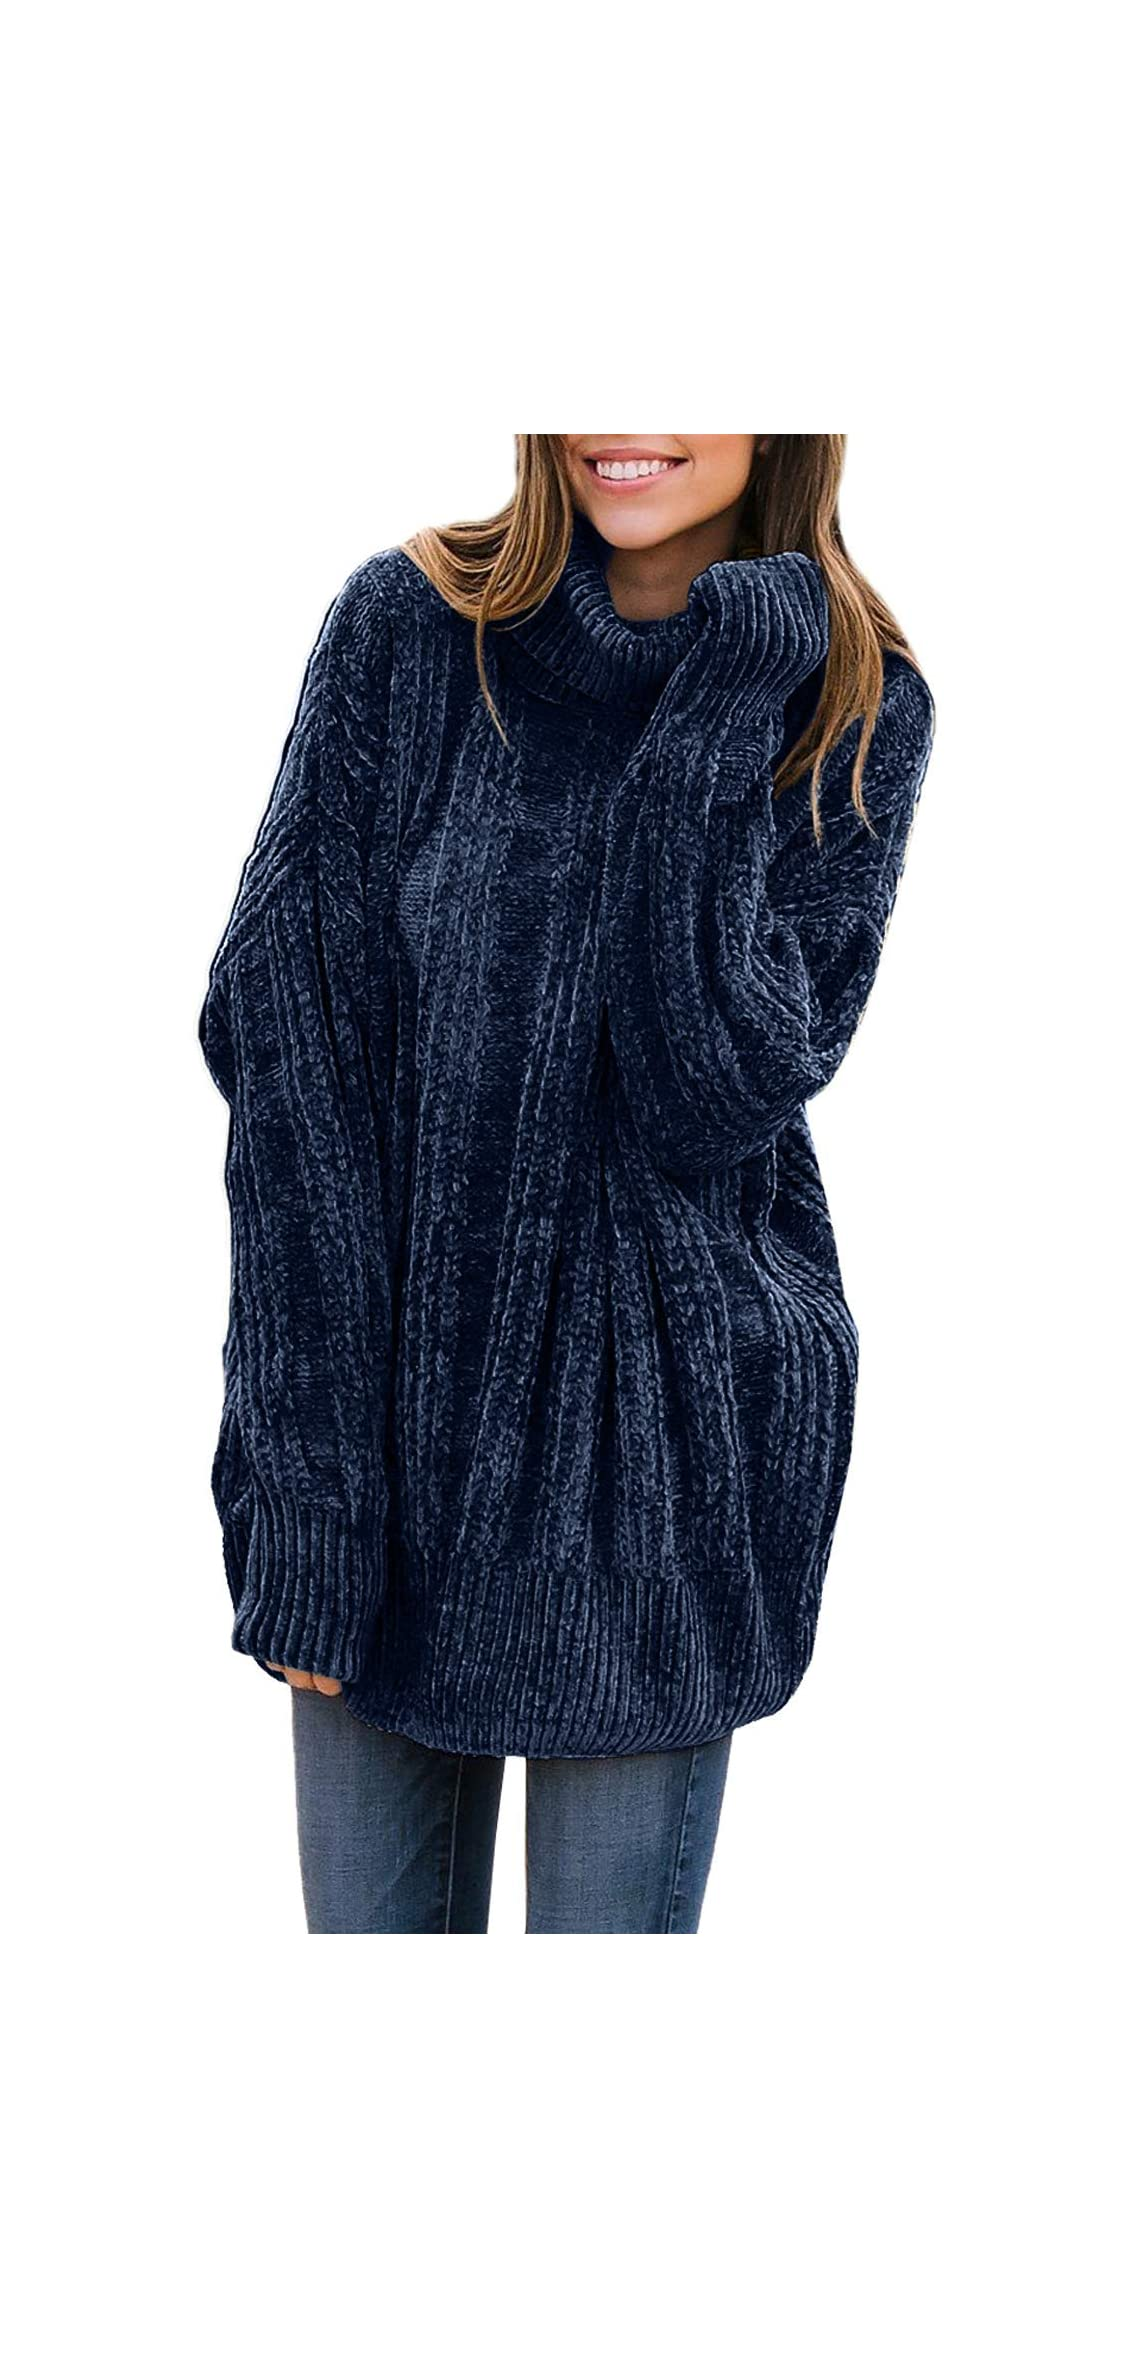 Women's Casual Cozy Turtleneck Long Sleeve Pullover Tops